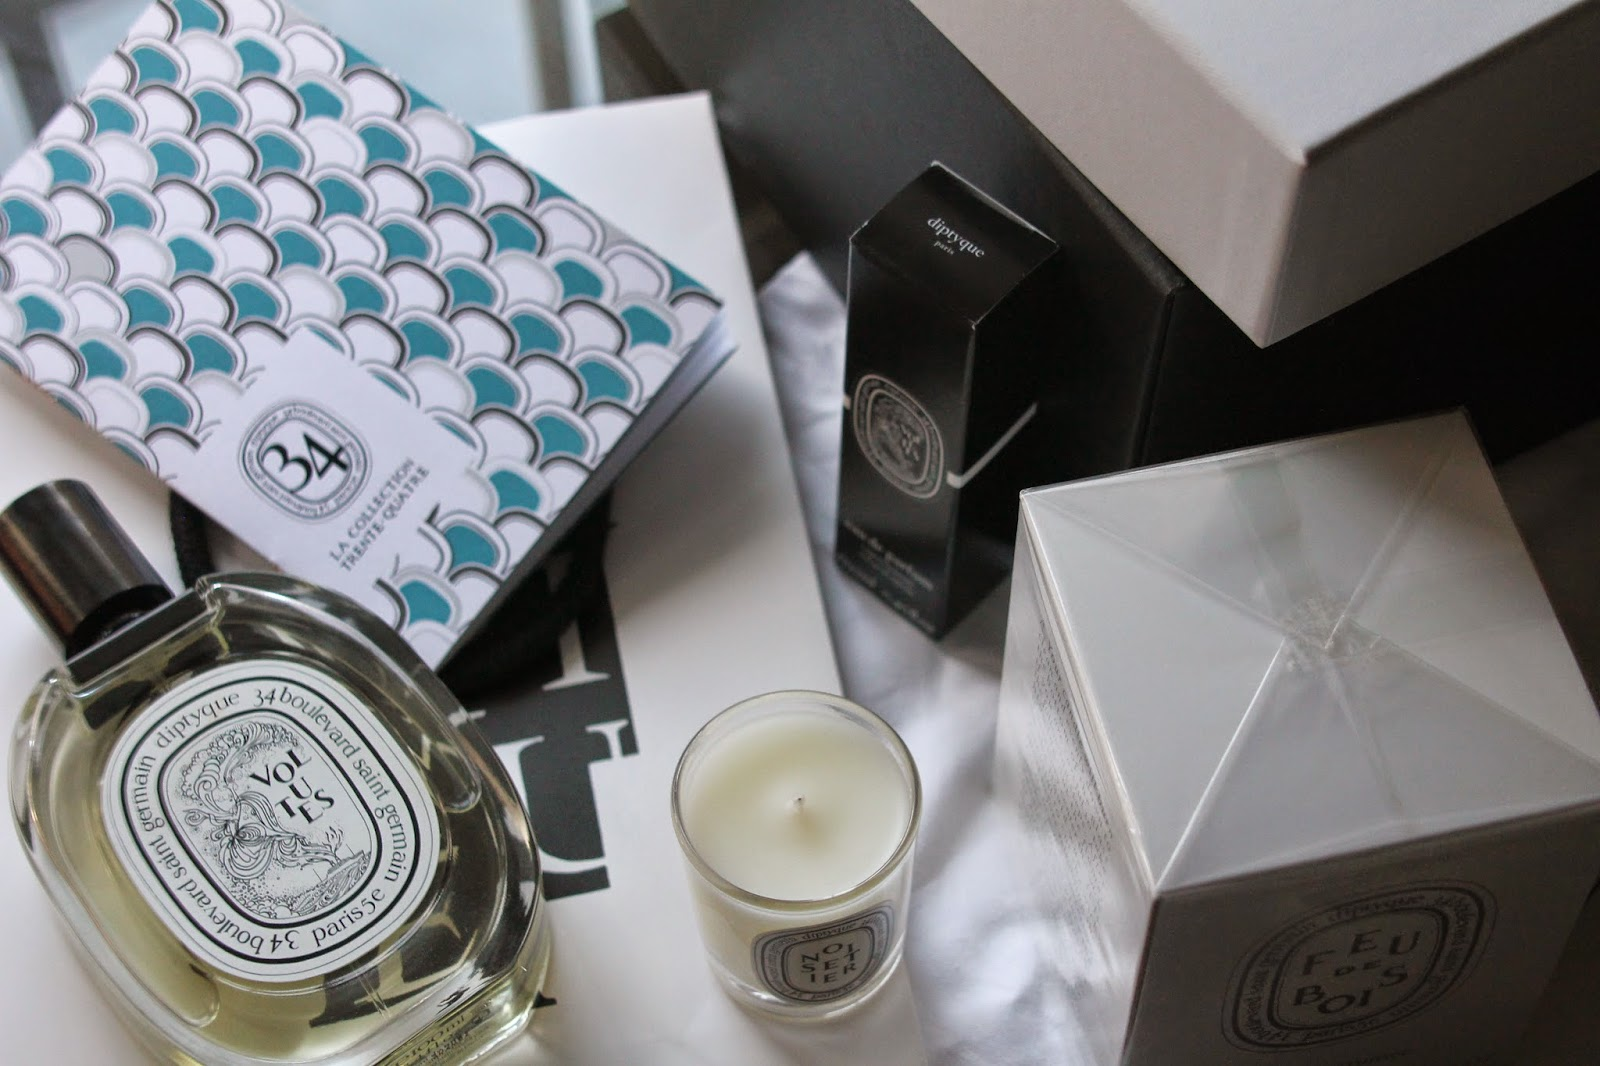 DIPTYQUE LA COLLECTION 34